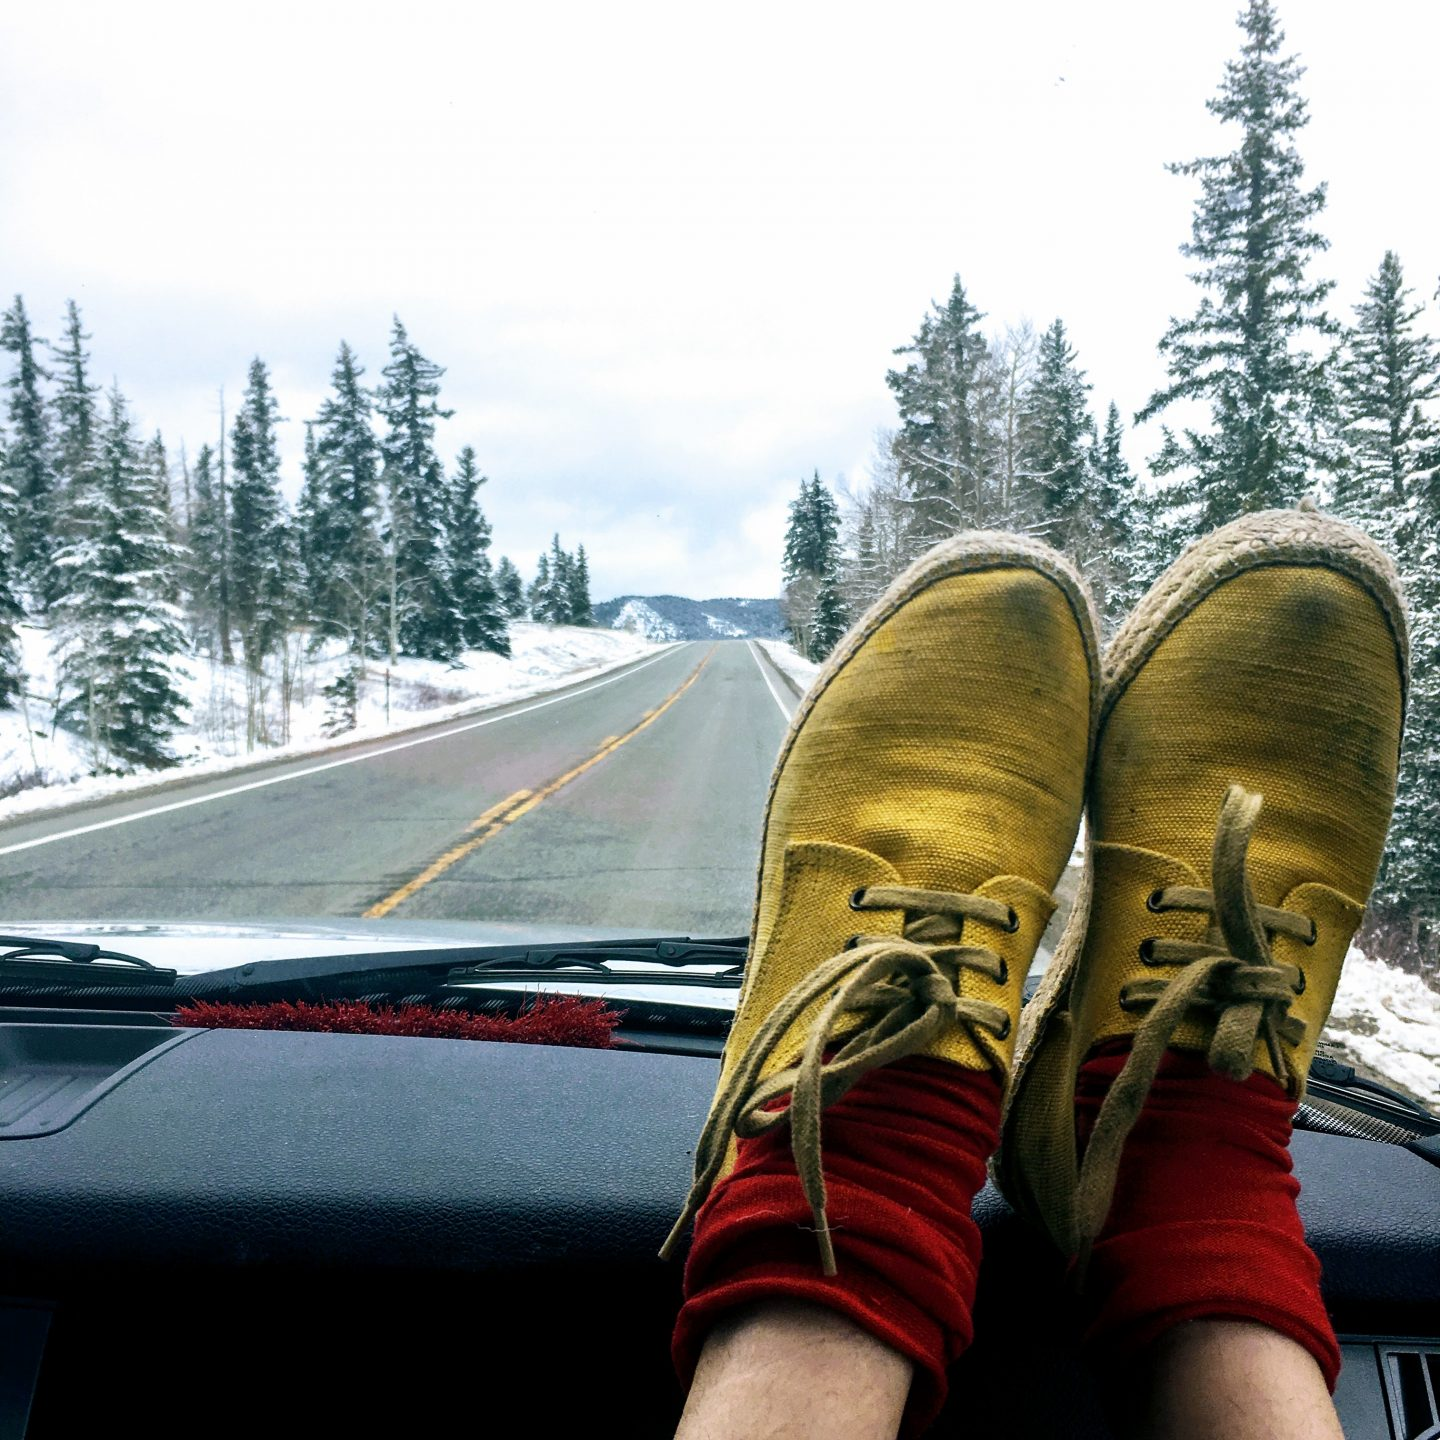 HOW TO HAVE AN AWESOME ROADTRIP